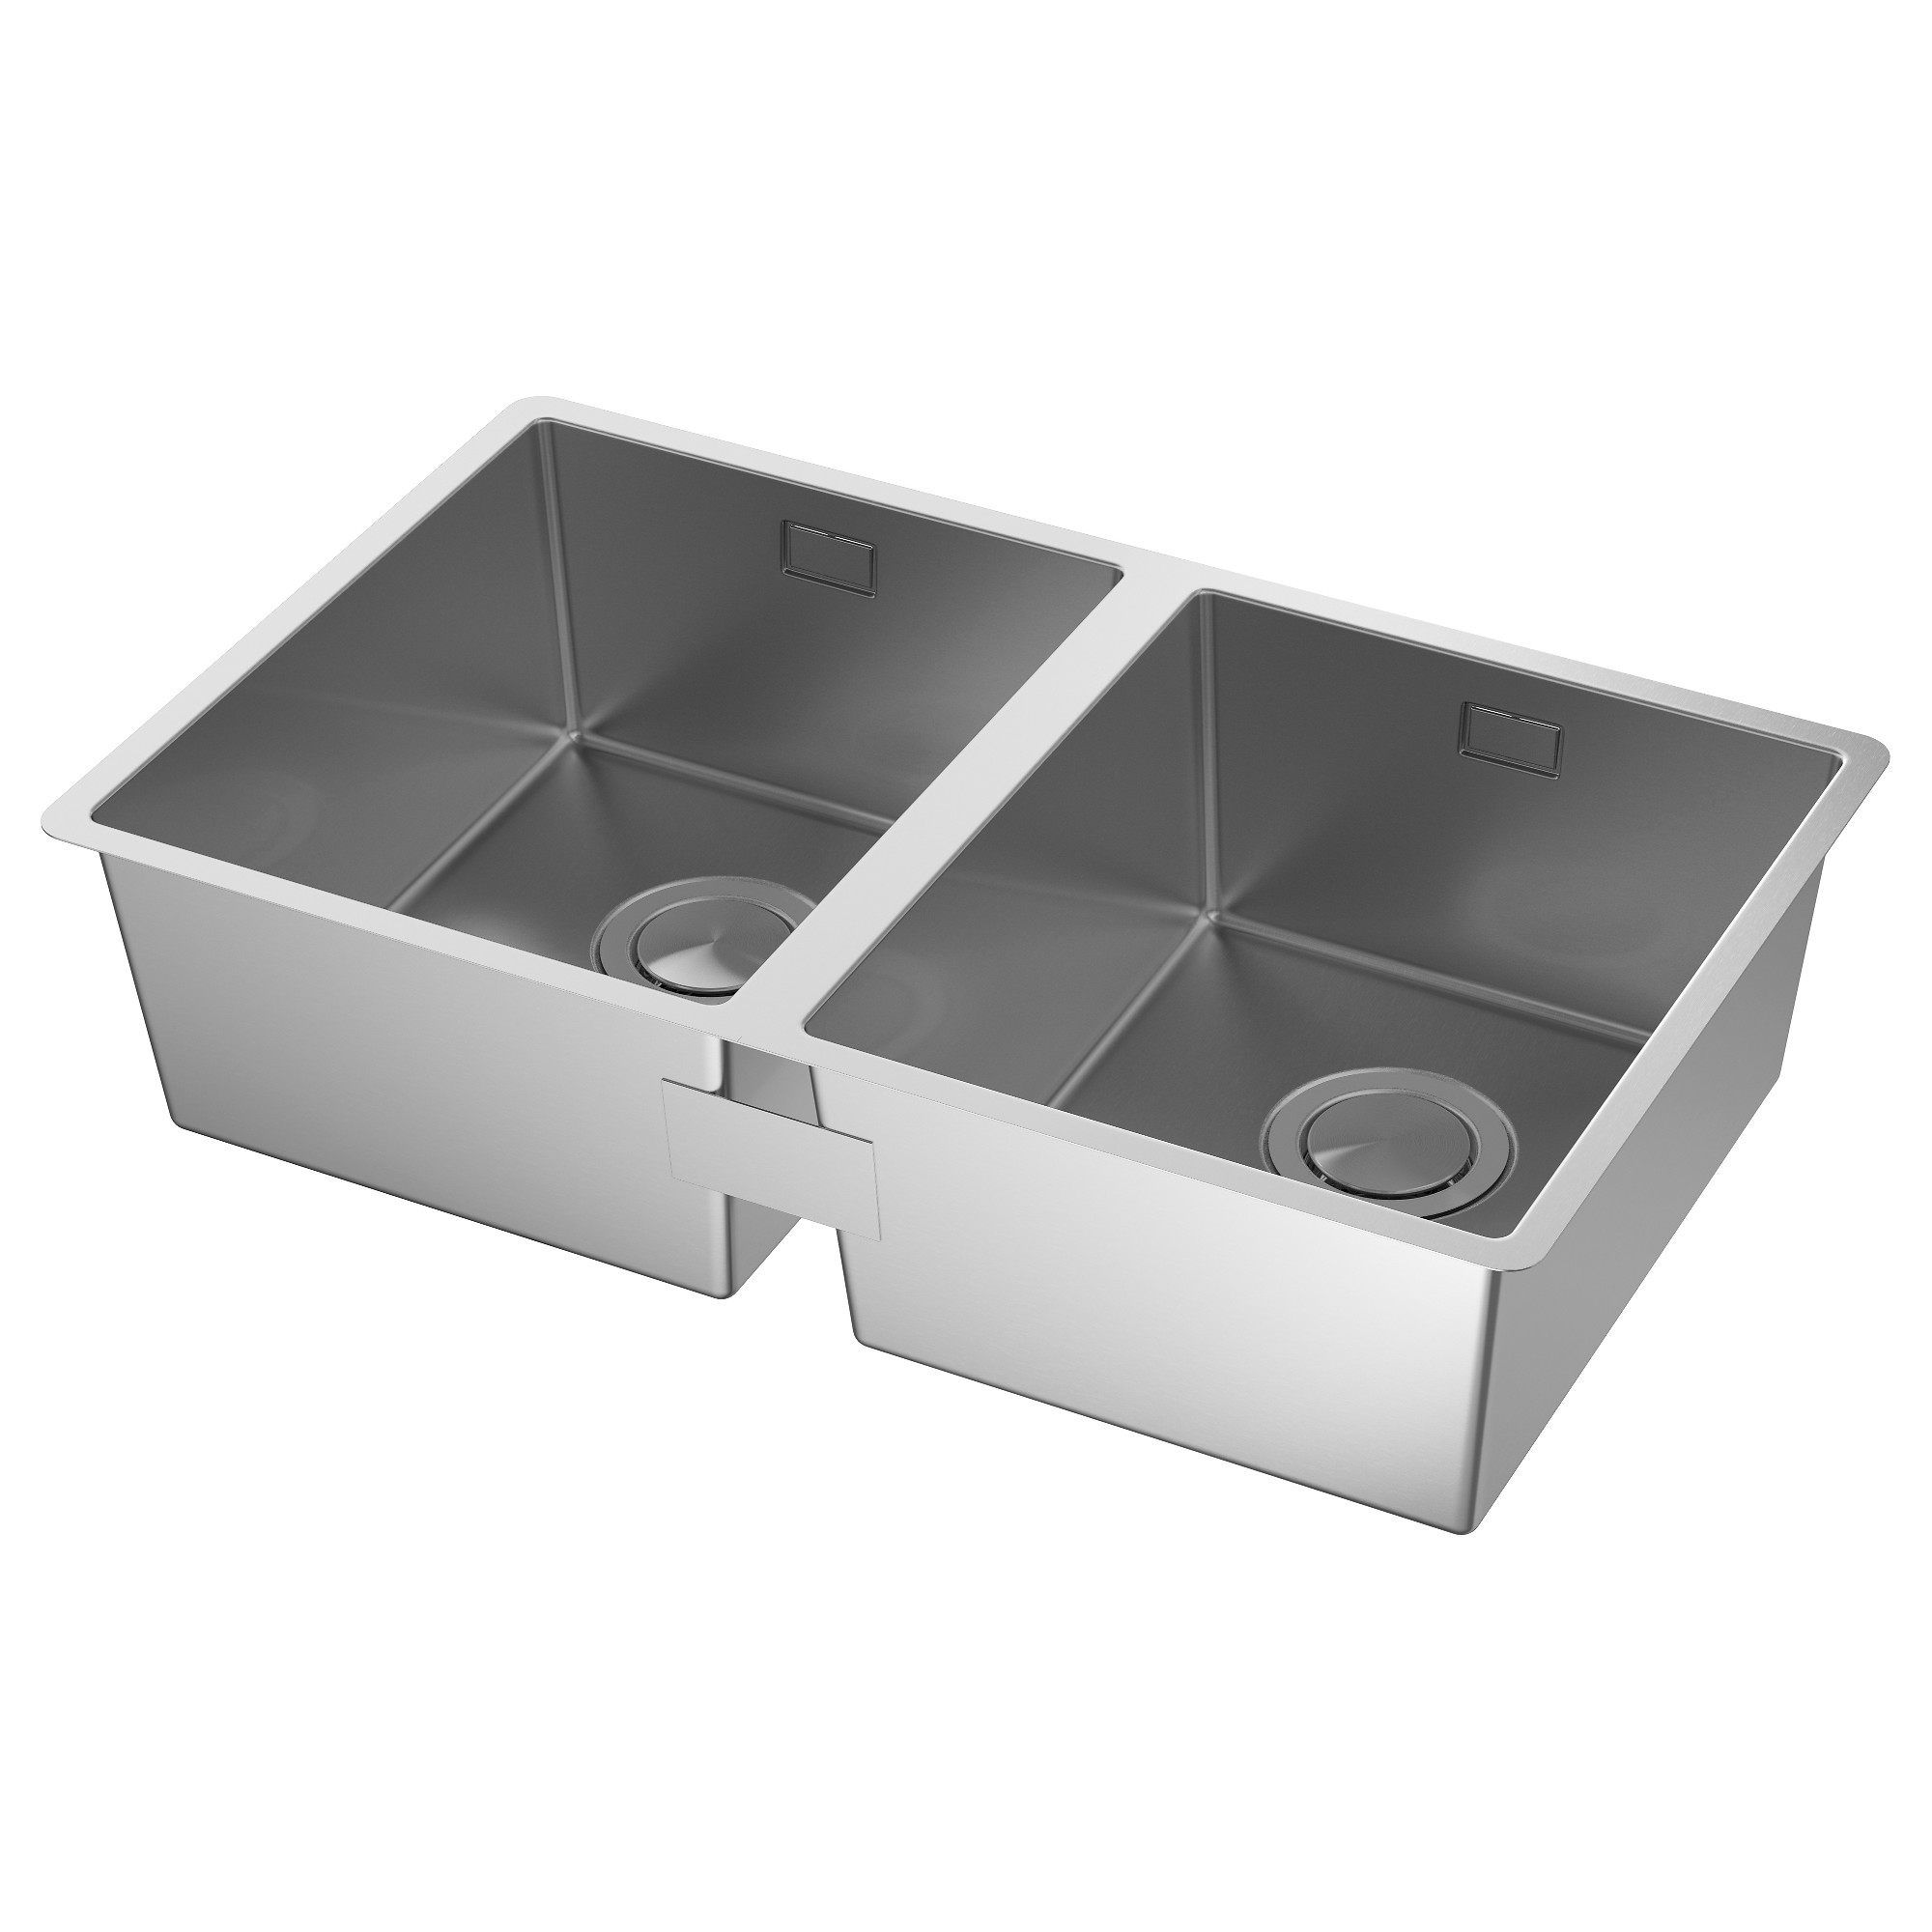 norrsj n inset sink 2 bowls stainless steel ikea rh ikea com square kitchen sink drain square kitchen sink bowl